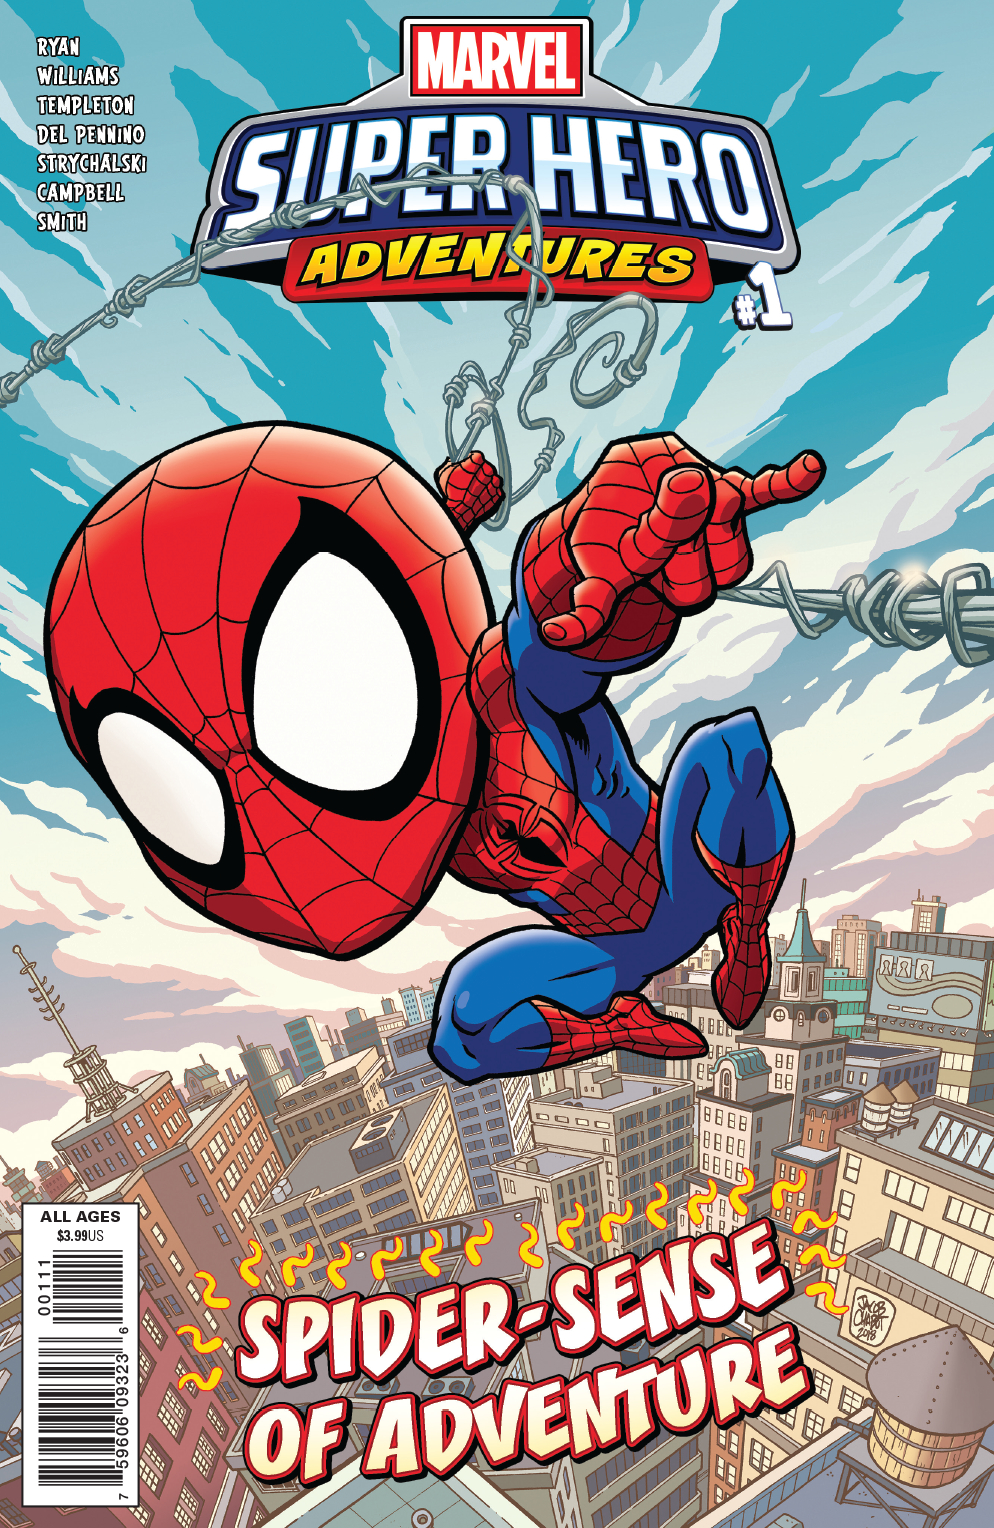 MSH ADVENTURES SPIDER-MAN SPIDER-SENSE OF ADVENTURE #1